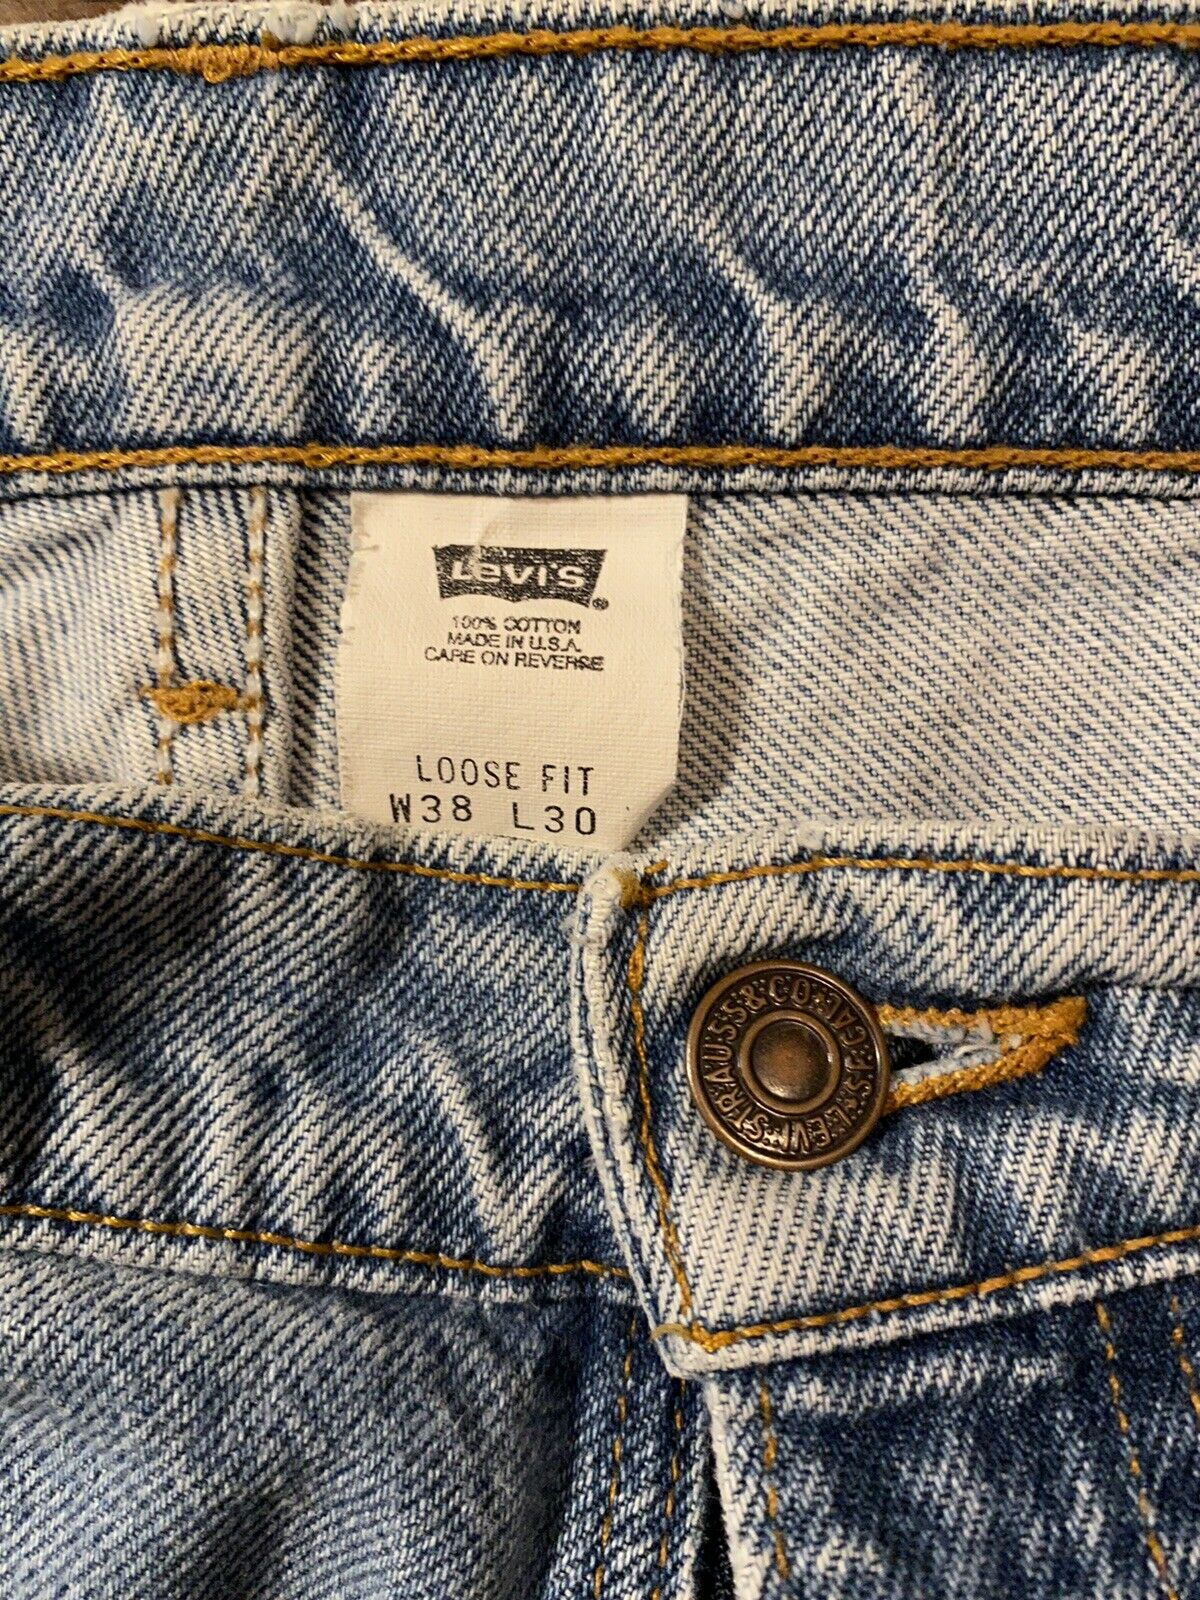 Vintage Levis (Brown Tab) Made In USA - image 4